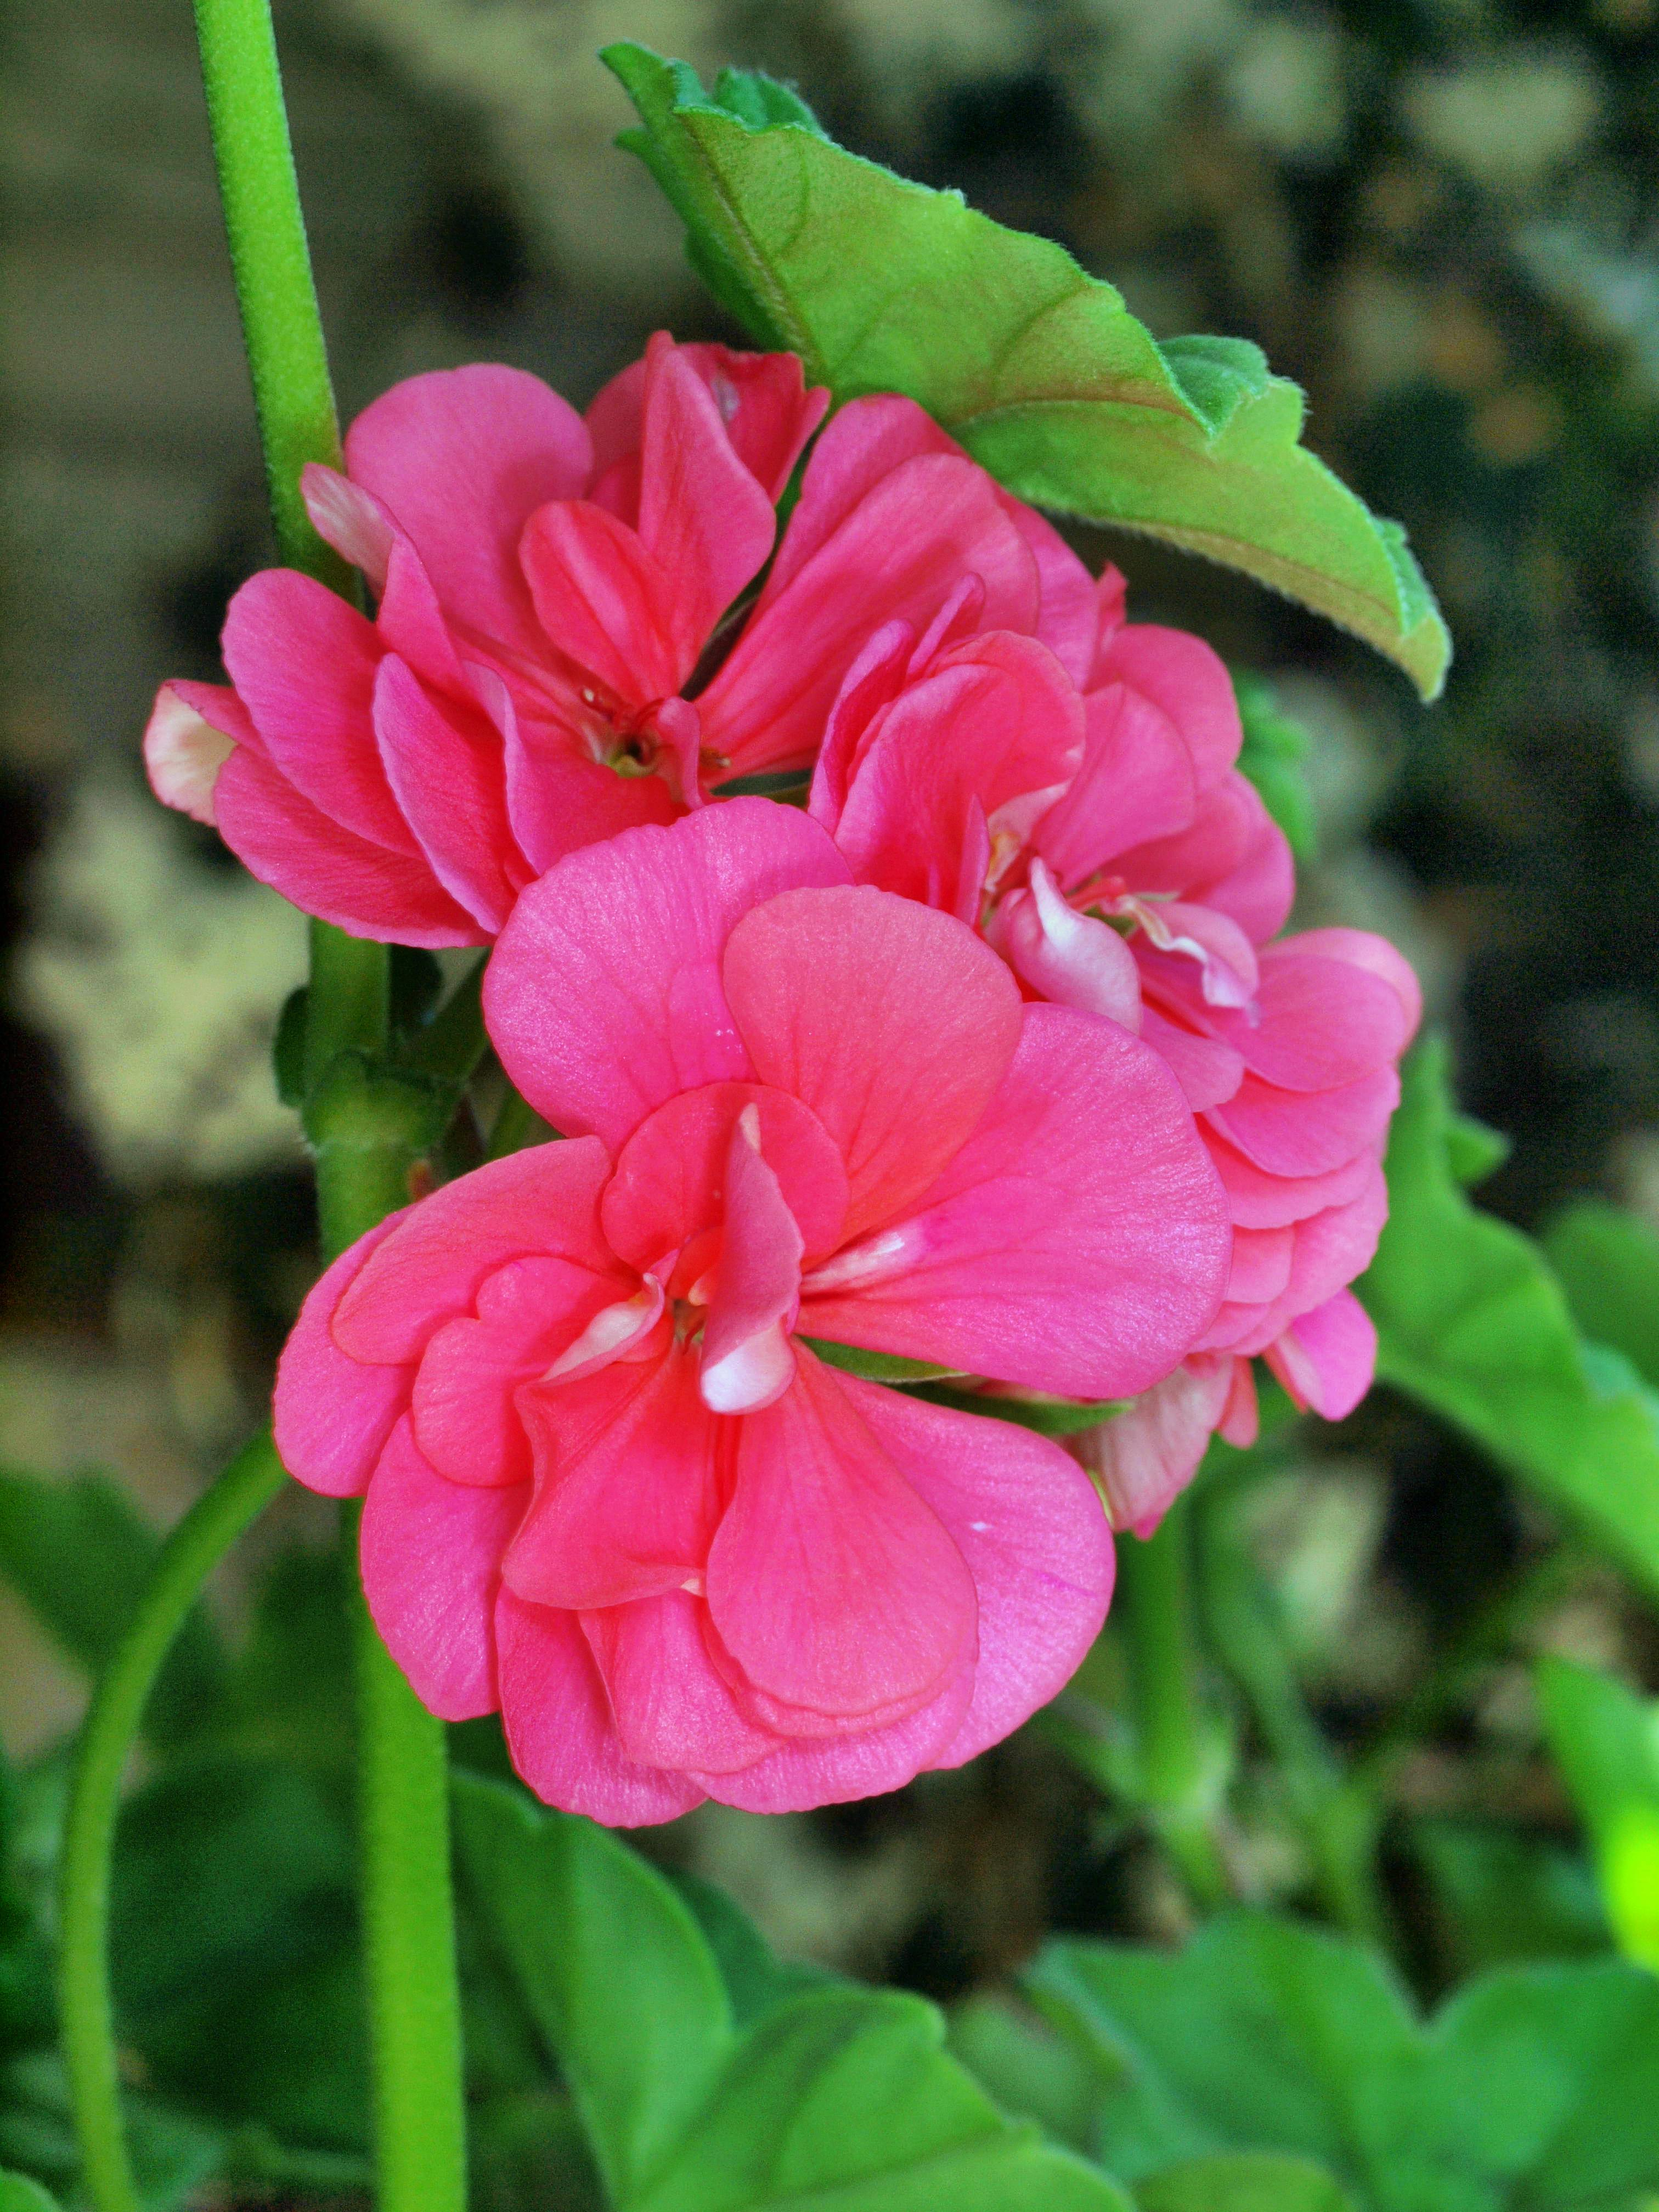 This should be Pelargonium-2.jpeg.  Is it missing?